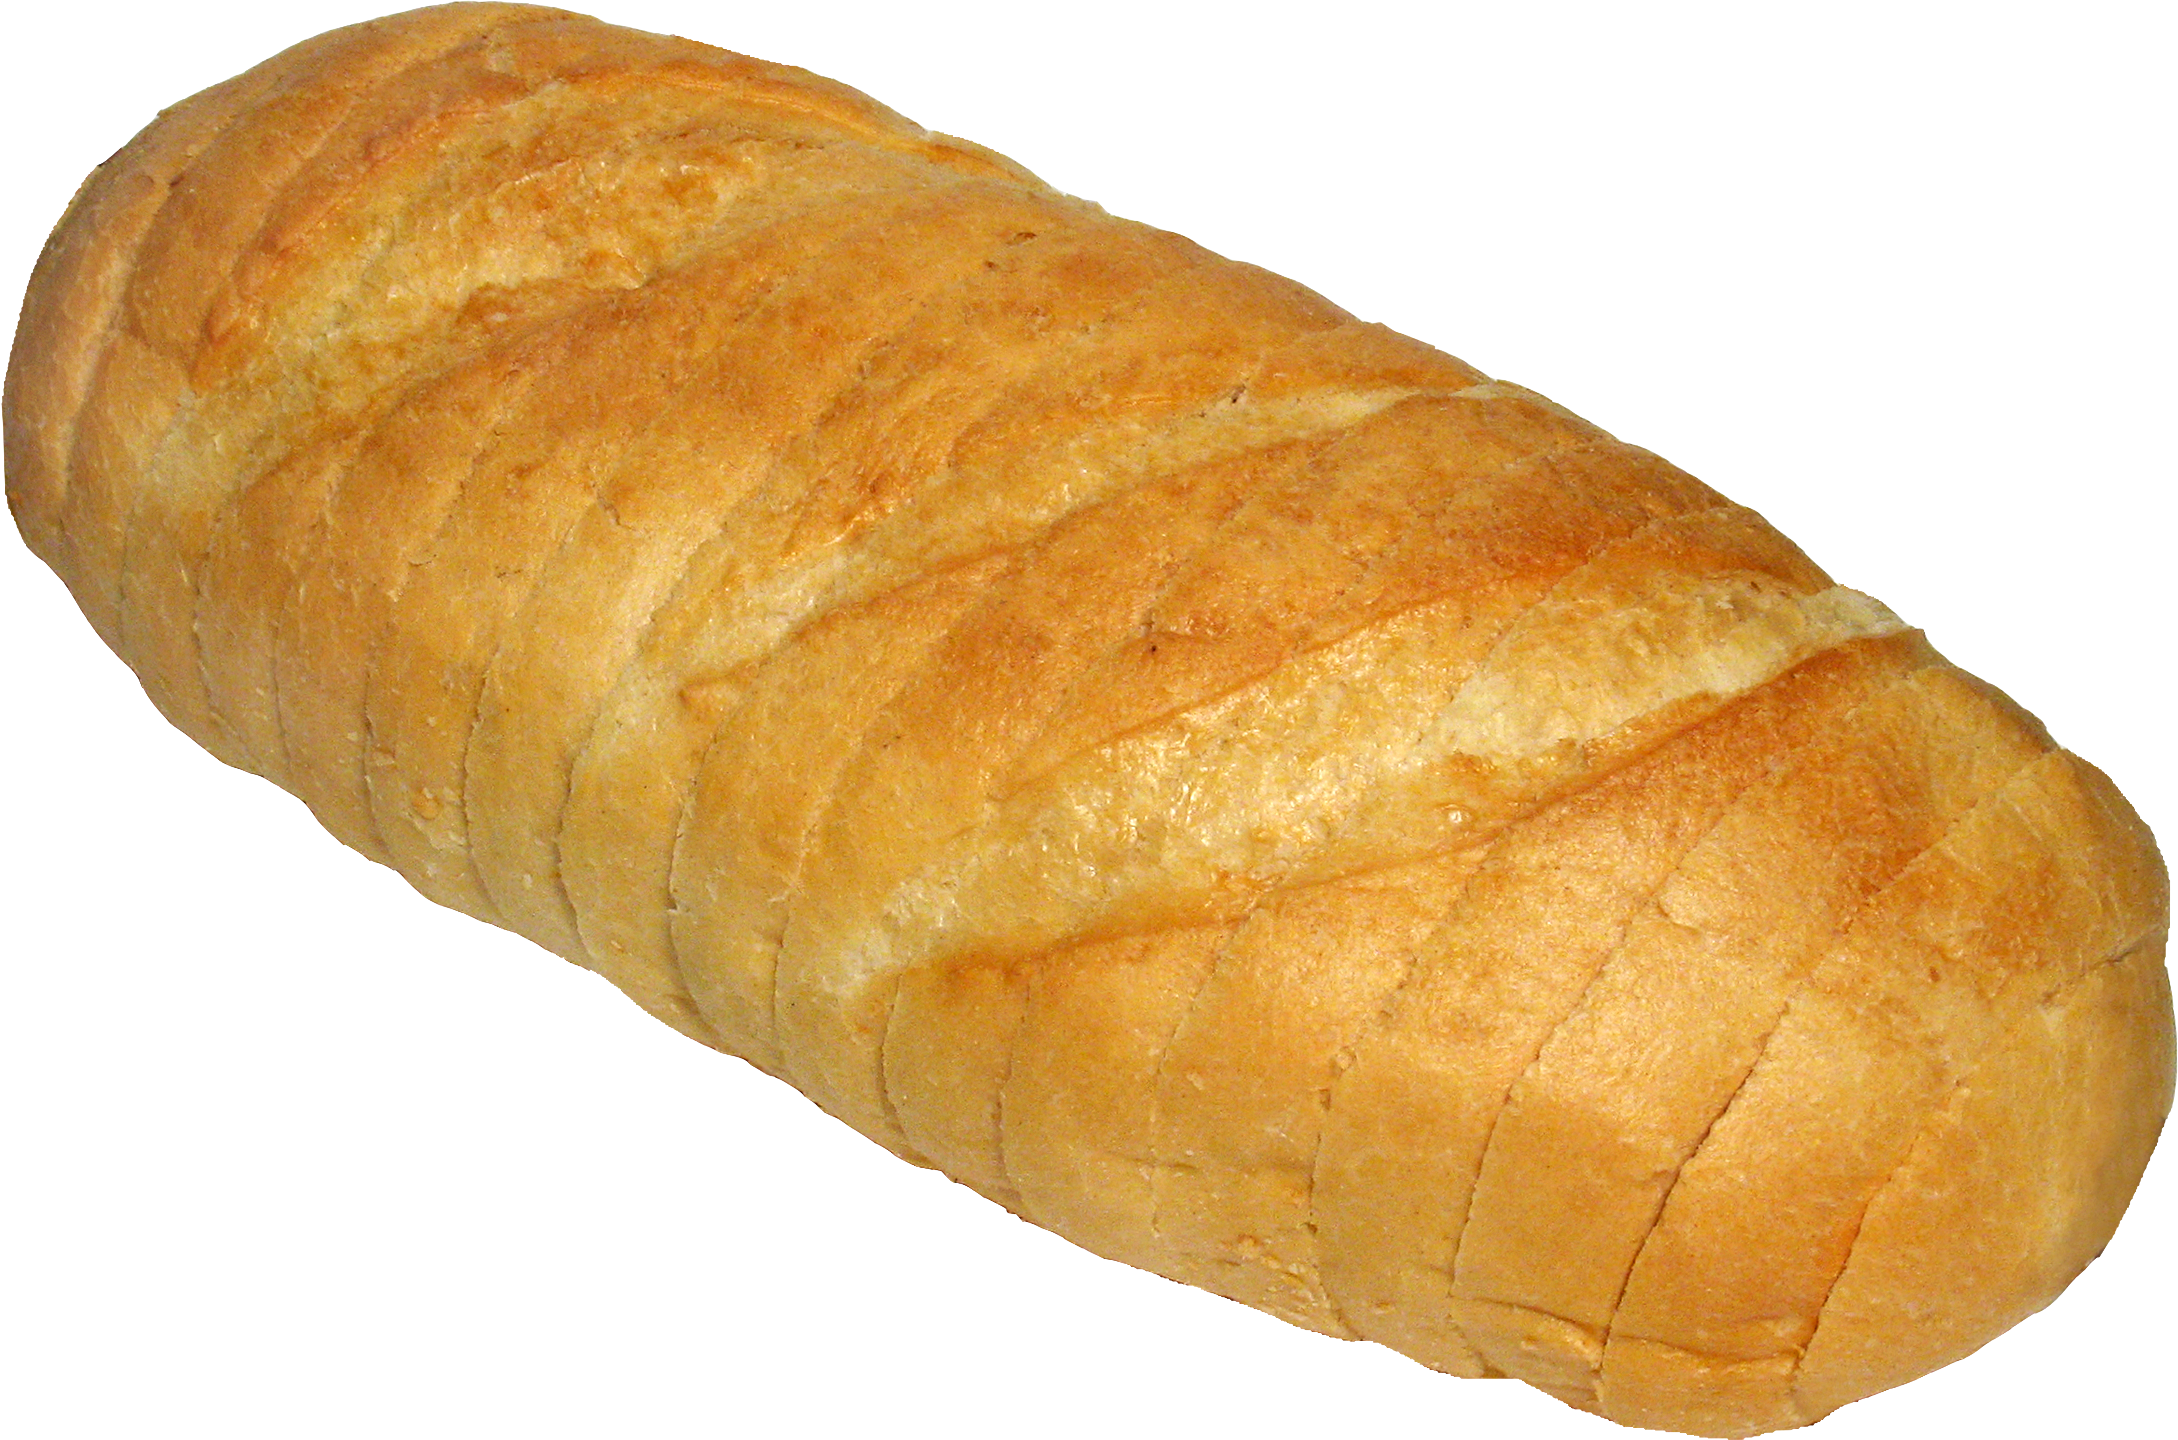 Bread clipart transparent background. Png image free download